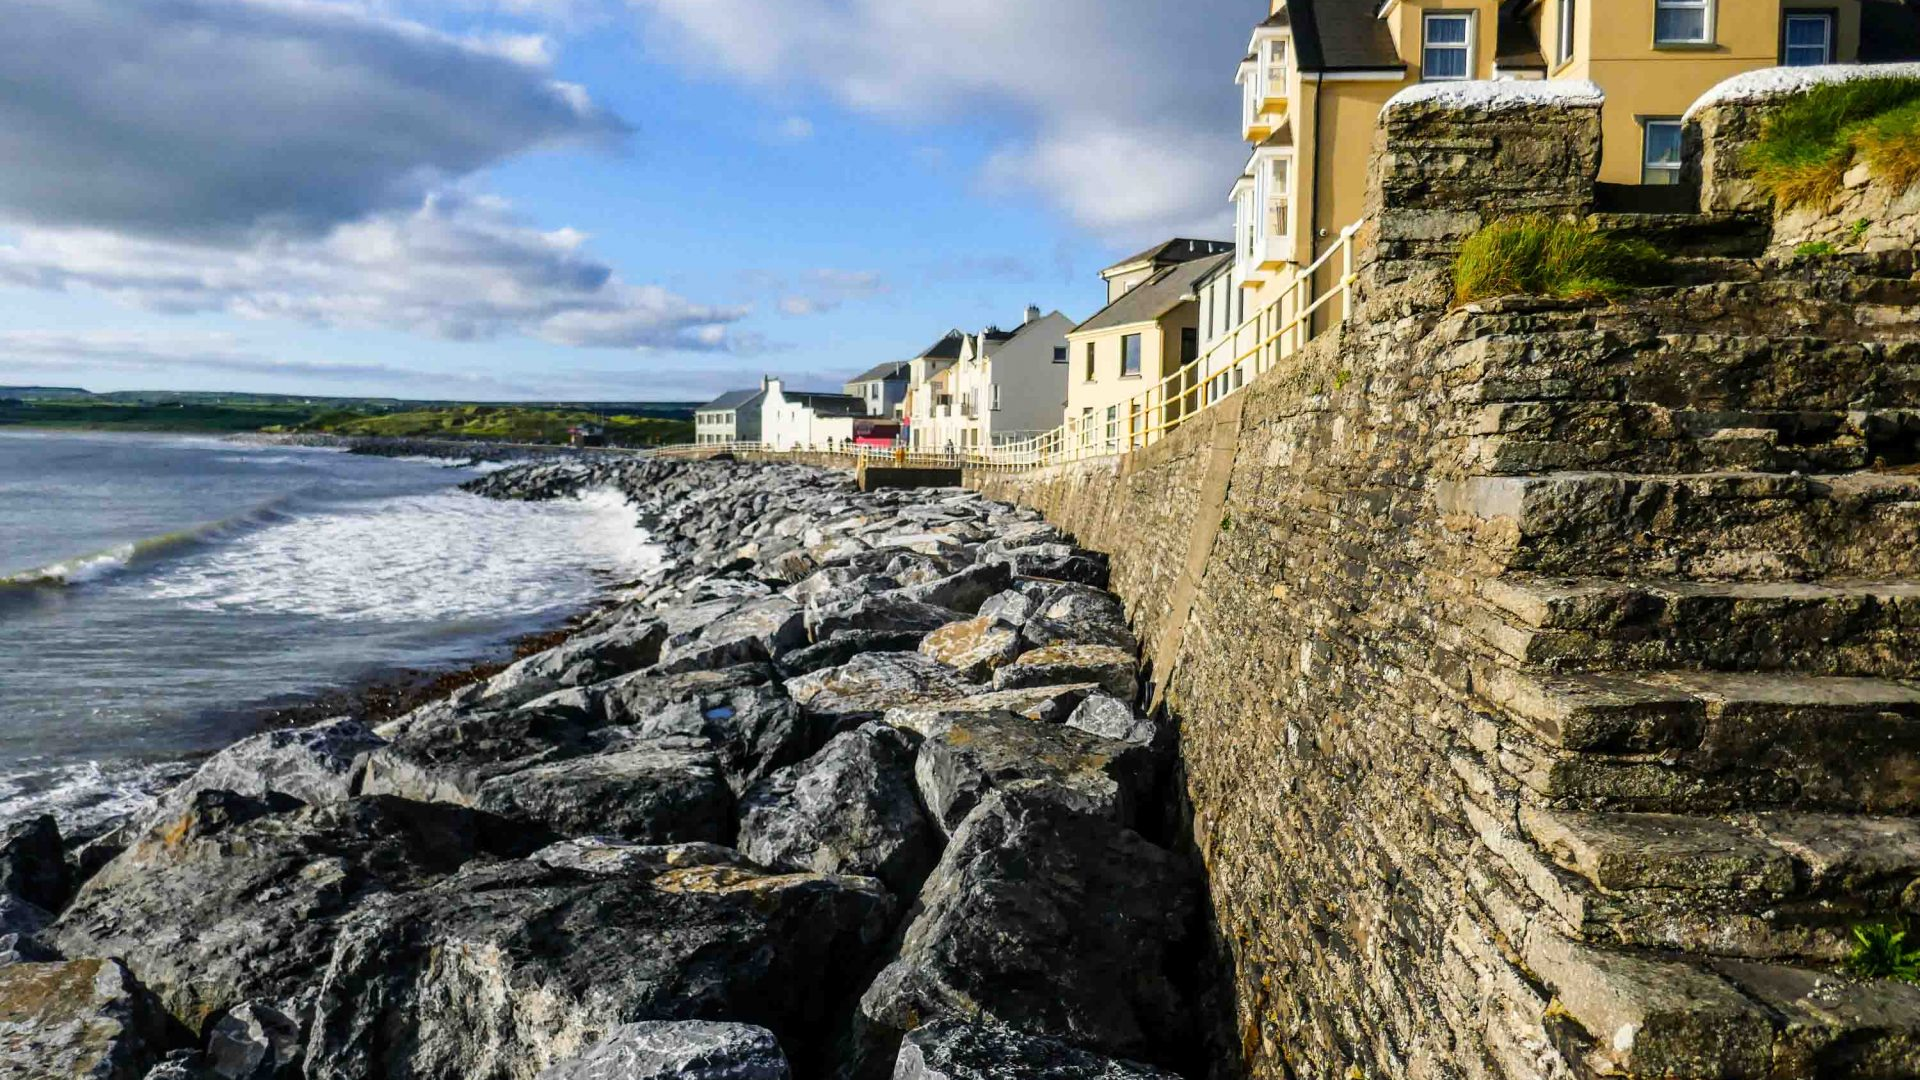 The coast at Lahinch, a small town on Liscannor Bay, on County Clare's northwest coast.